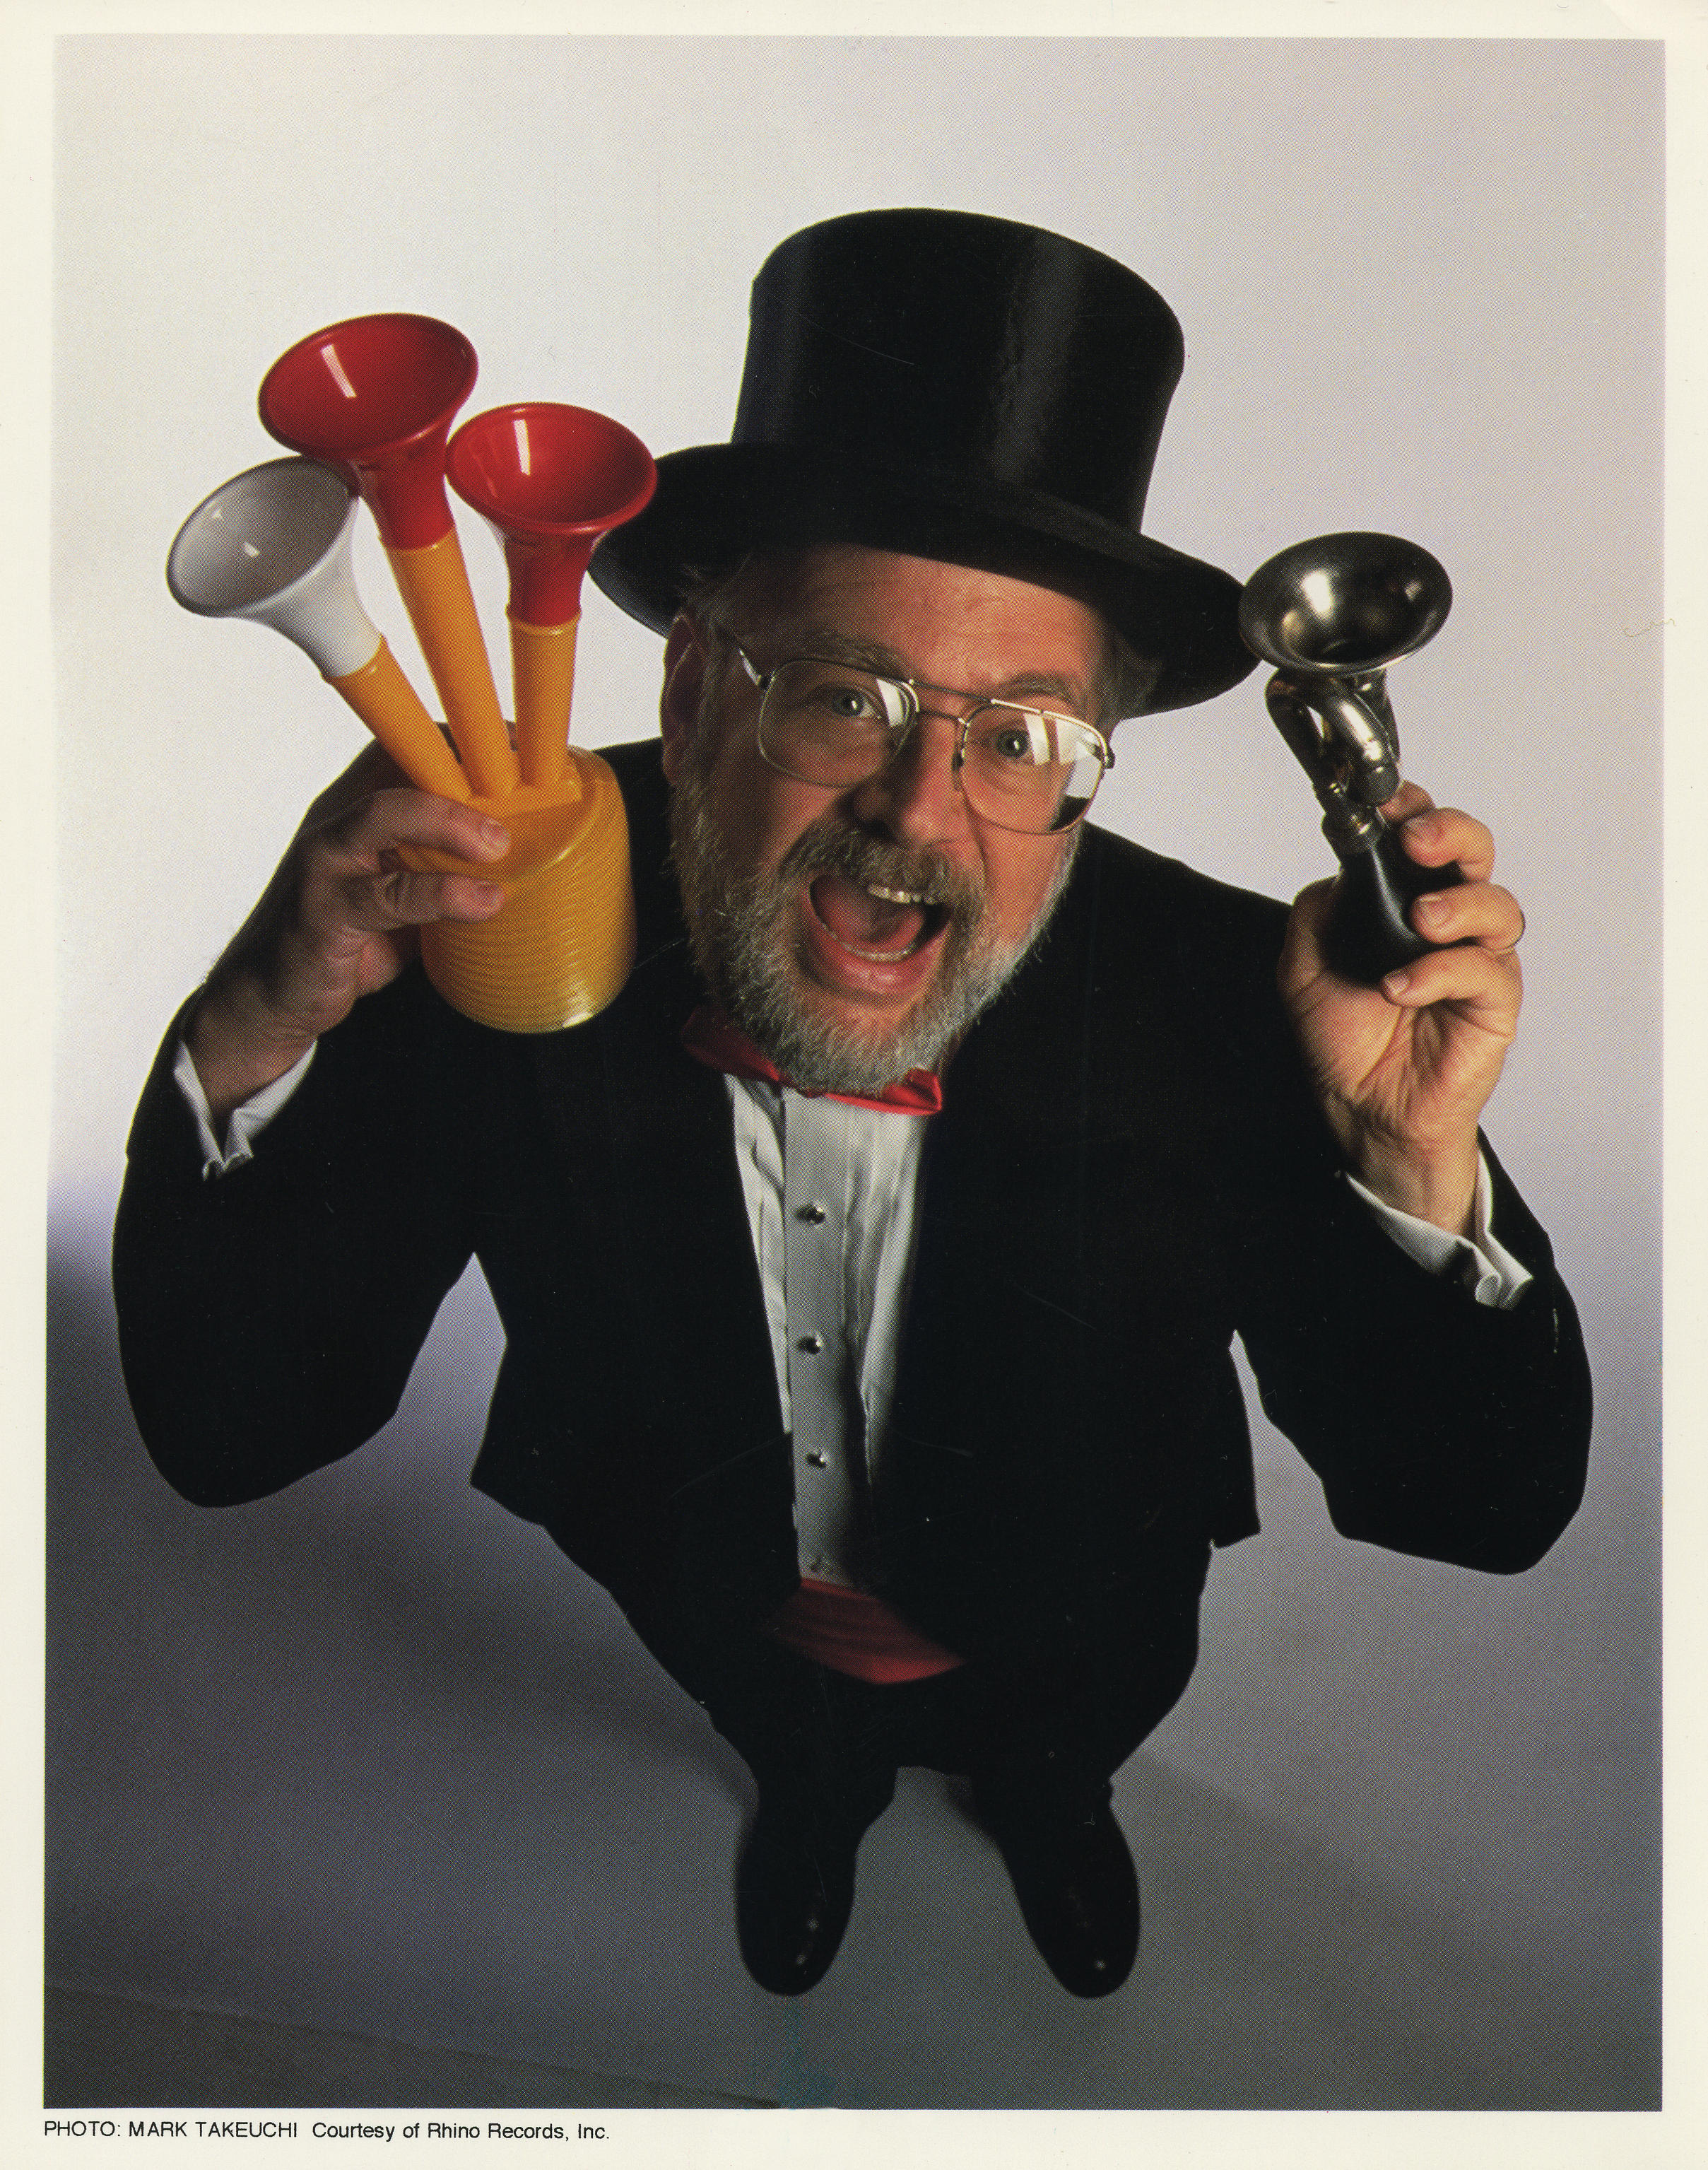 dr demento holding horns